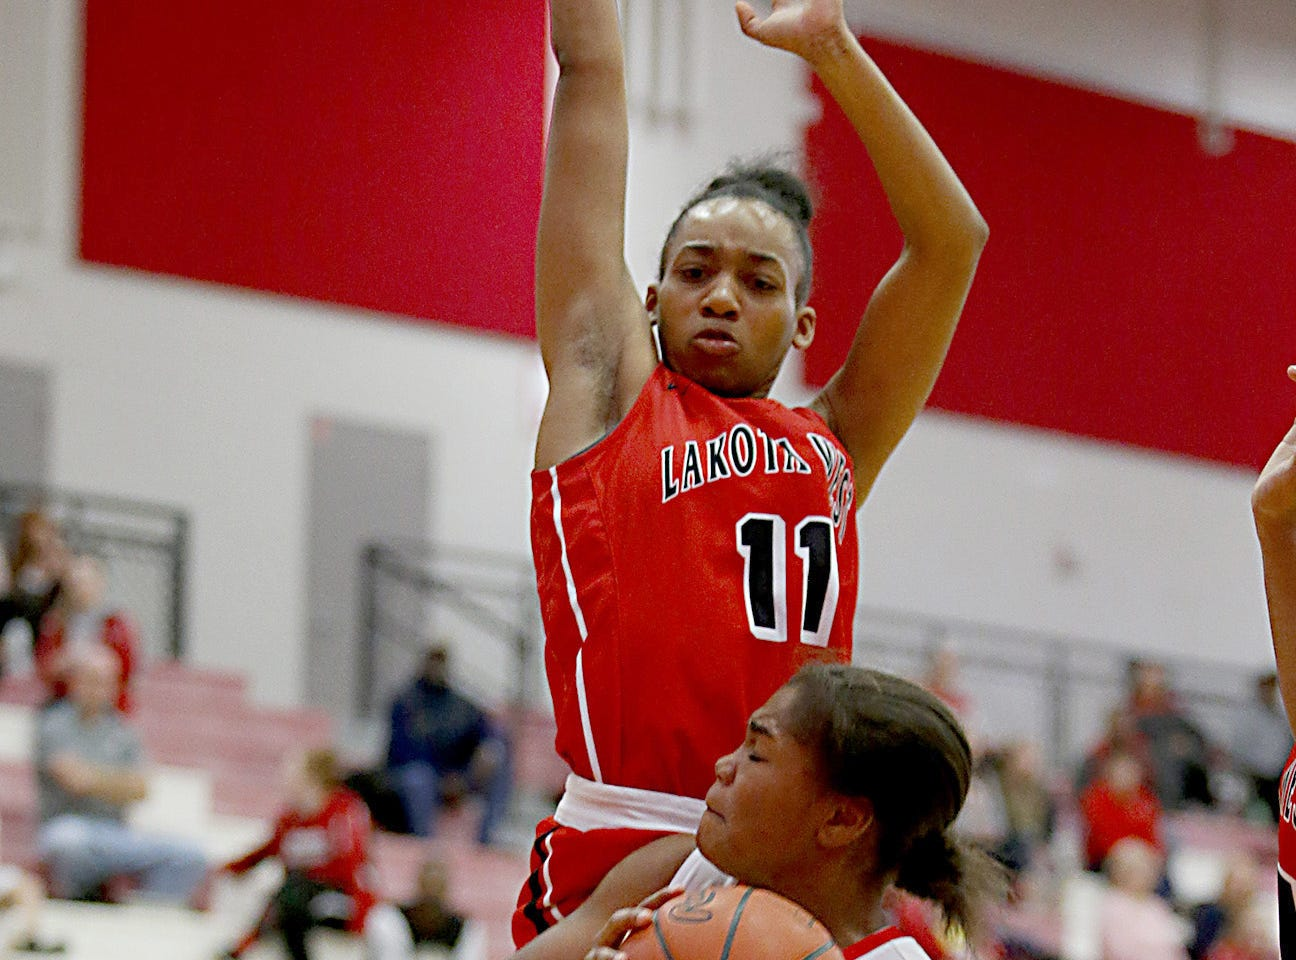 Fairfield guard Journee Hicks draws a foul from Lakota West's Dominique Camp during their game at Fairfield Saturday, Dec. 1, 2018.